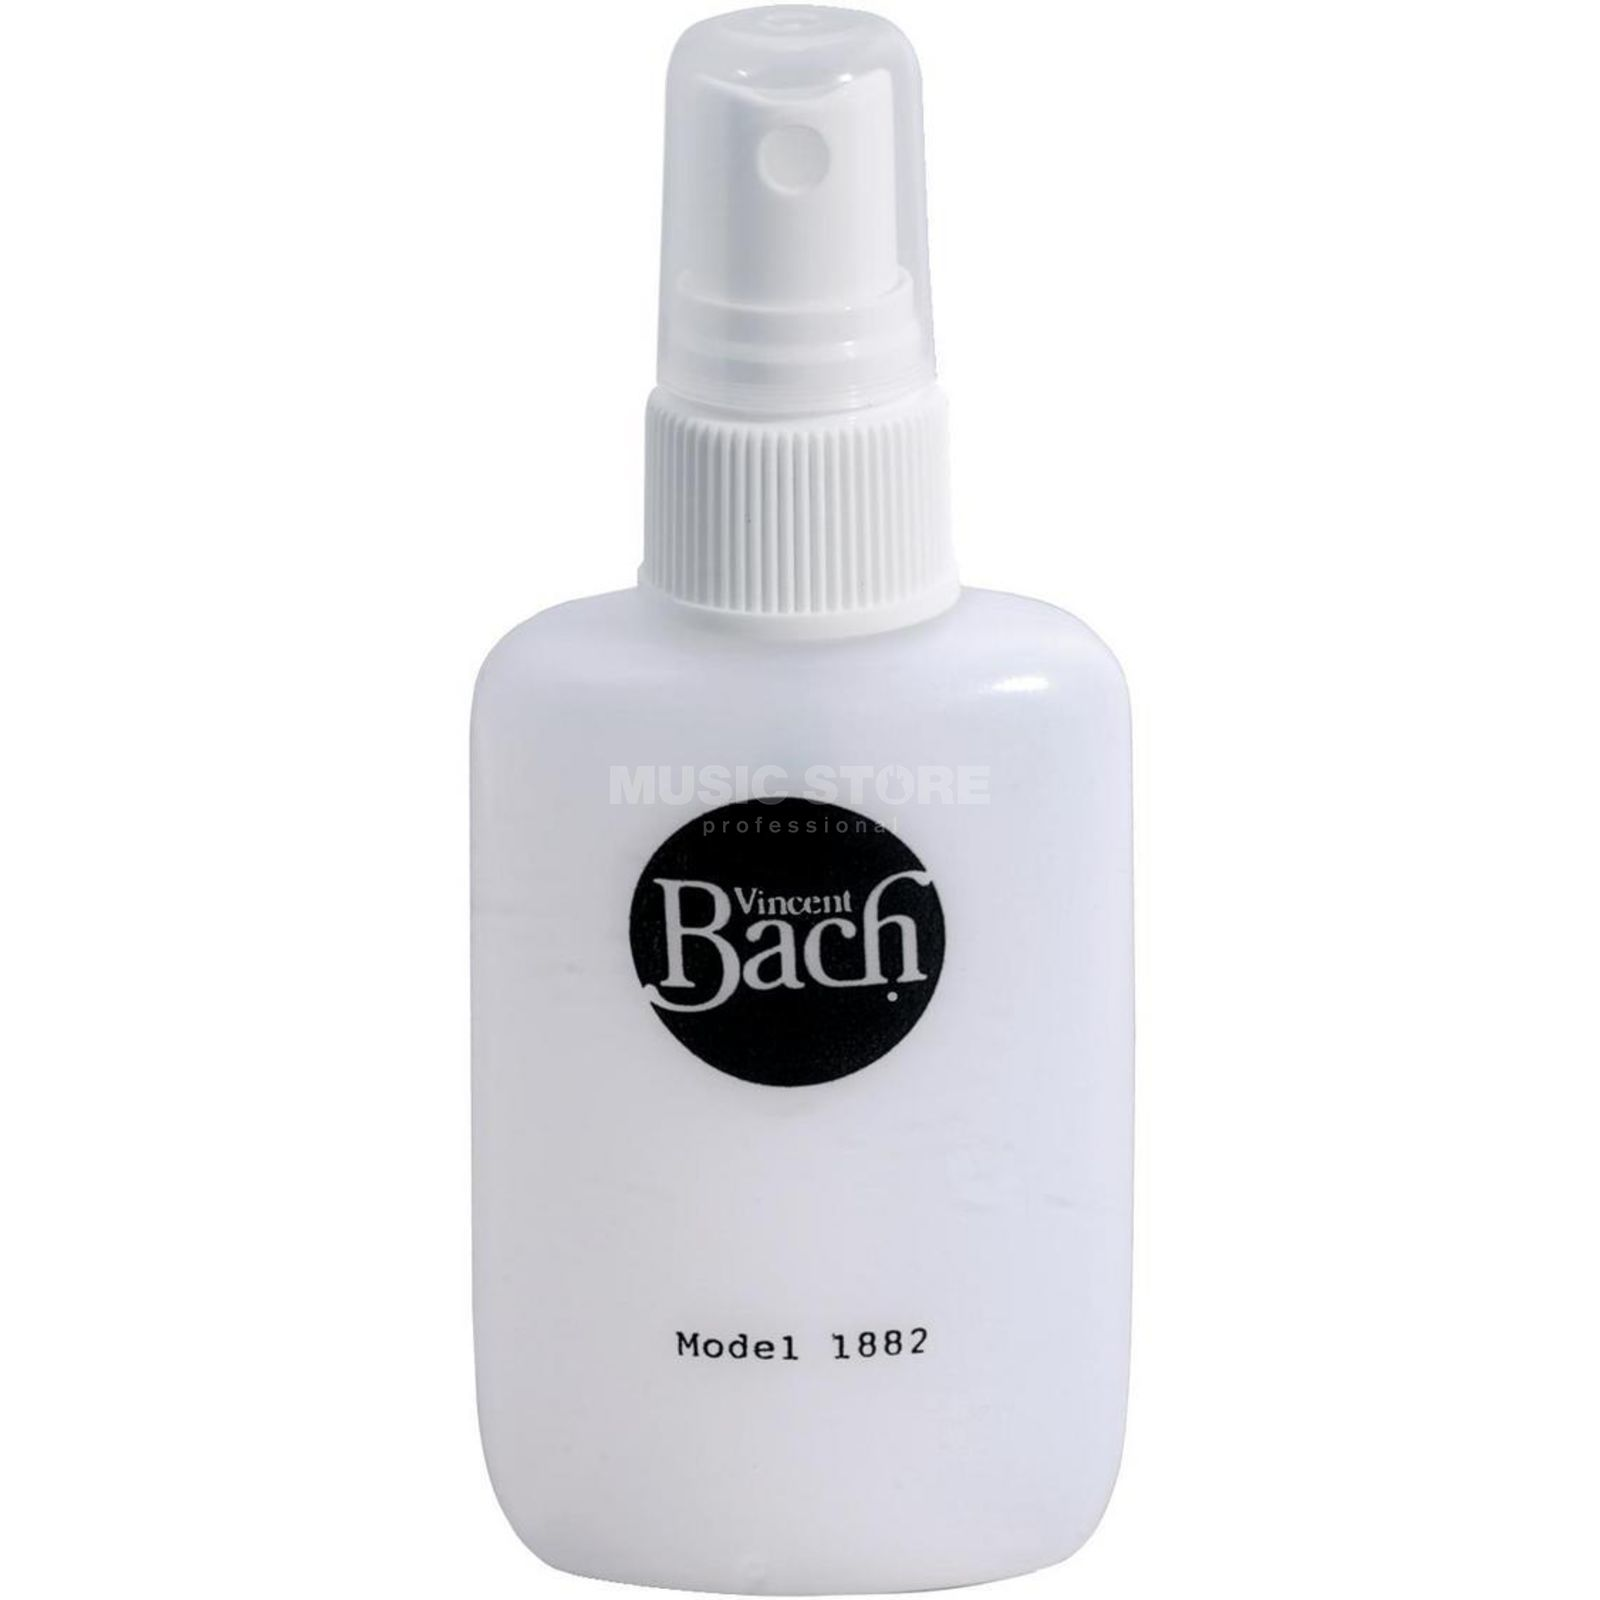 BACH Empty Sprax Bottle as Replacement for Cleaning Kit Изображение товара